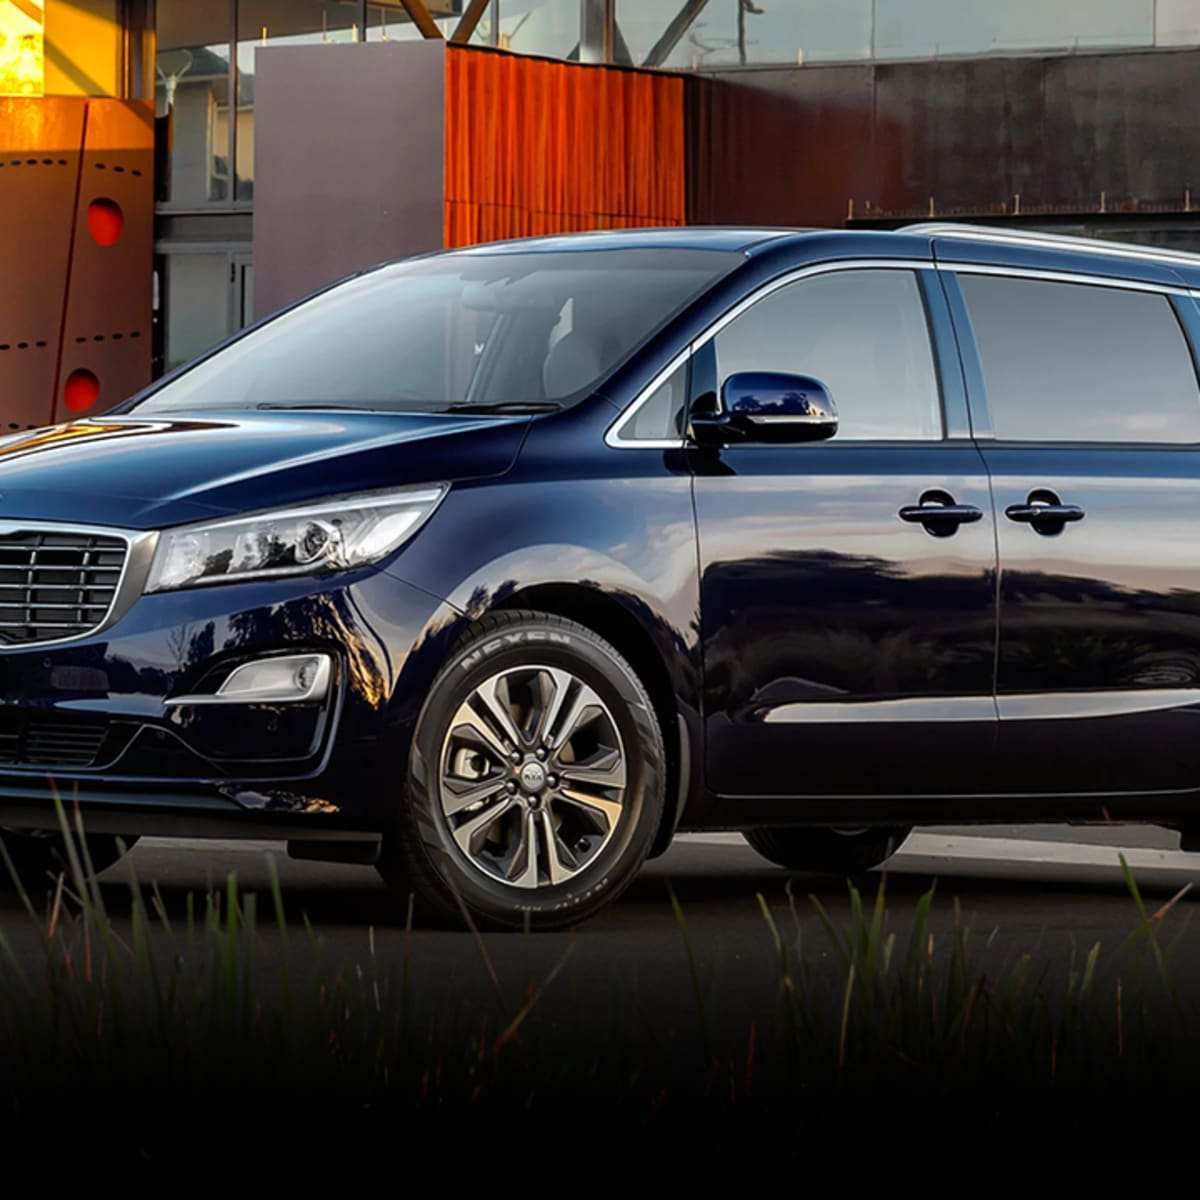 15 Best Kia Carnival 2020 Release Date Australia Reviews